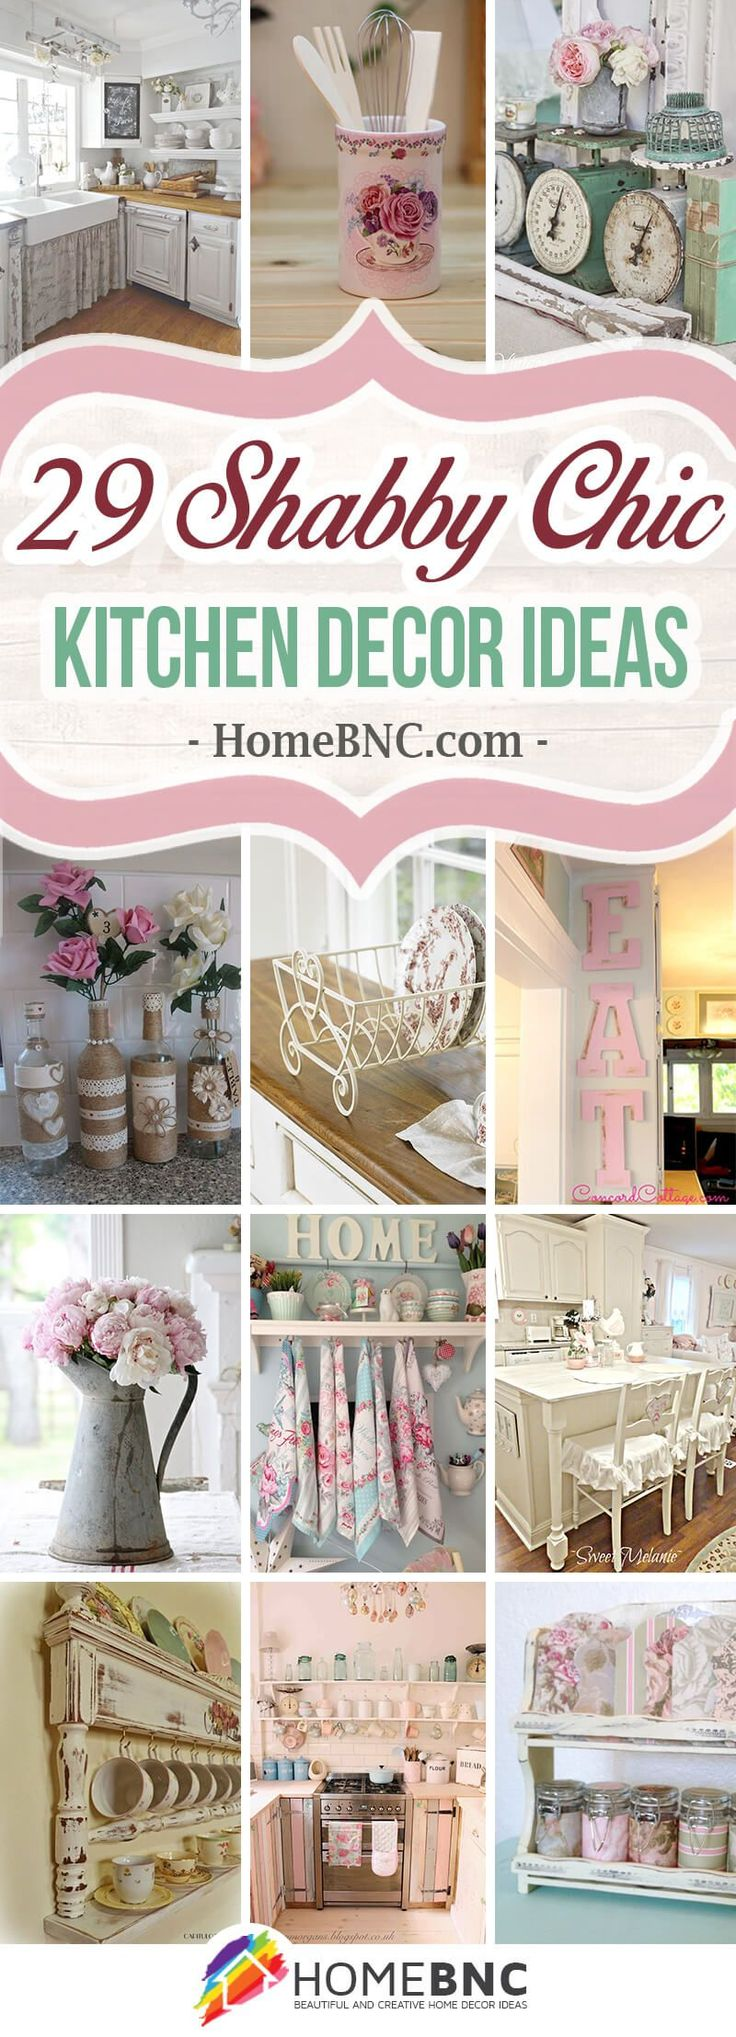 Best 25+ Shabby chic lamps ideas on Pinterest | Shabby ...